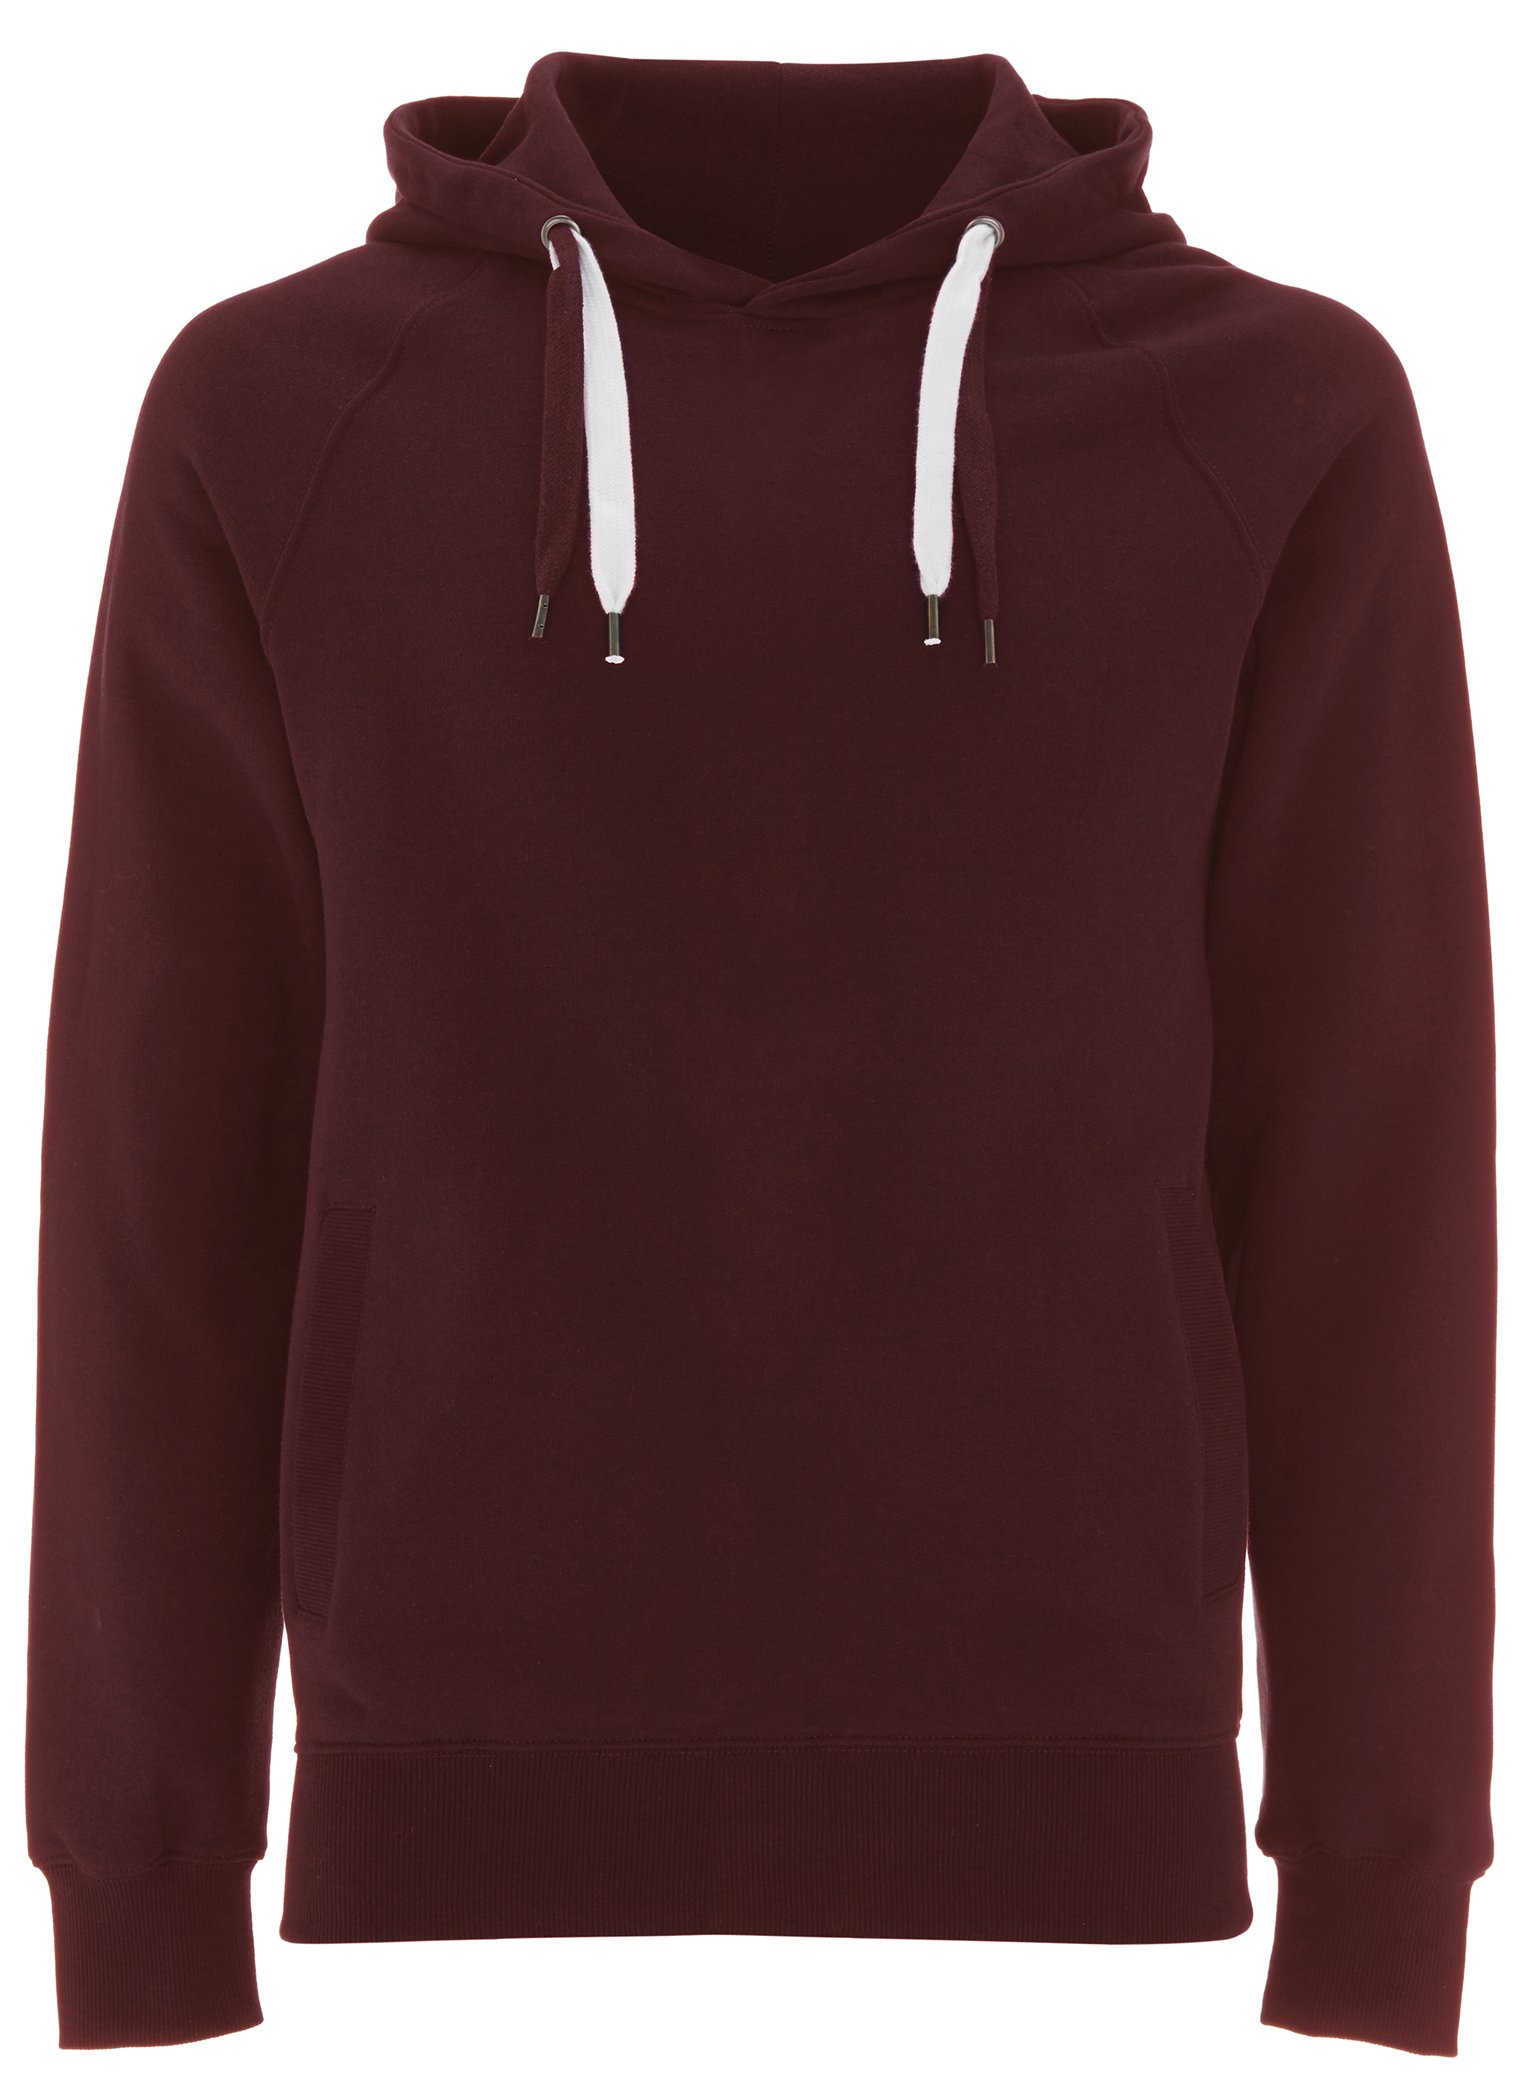 Claret Red Pullover Hoodie for Women - Medium - Womens Hooded Cotton Sweatshirt by Underhood of London